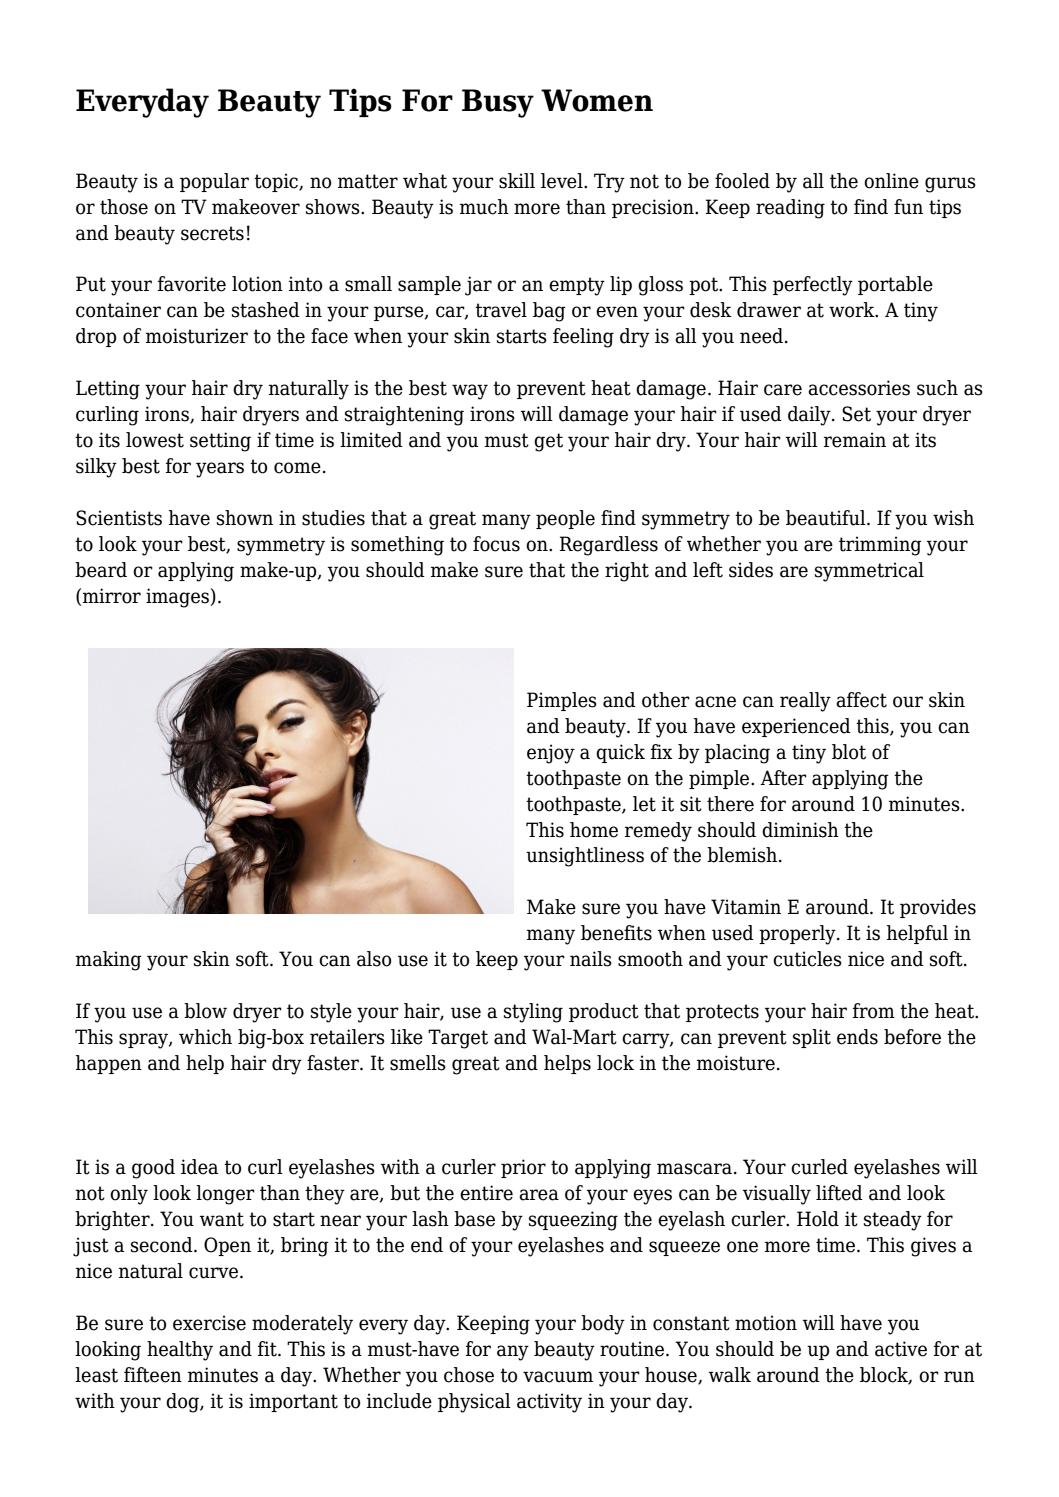 Everyday Beauty Tips For Busy Women by tearfuljuvenile12 - issuu